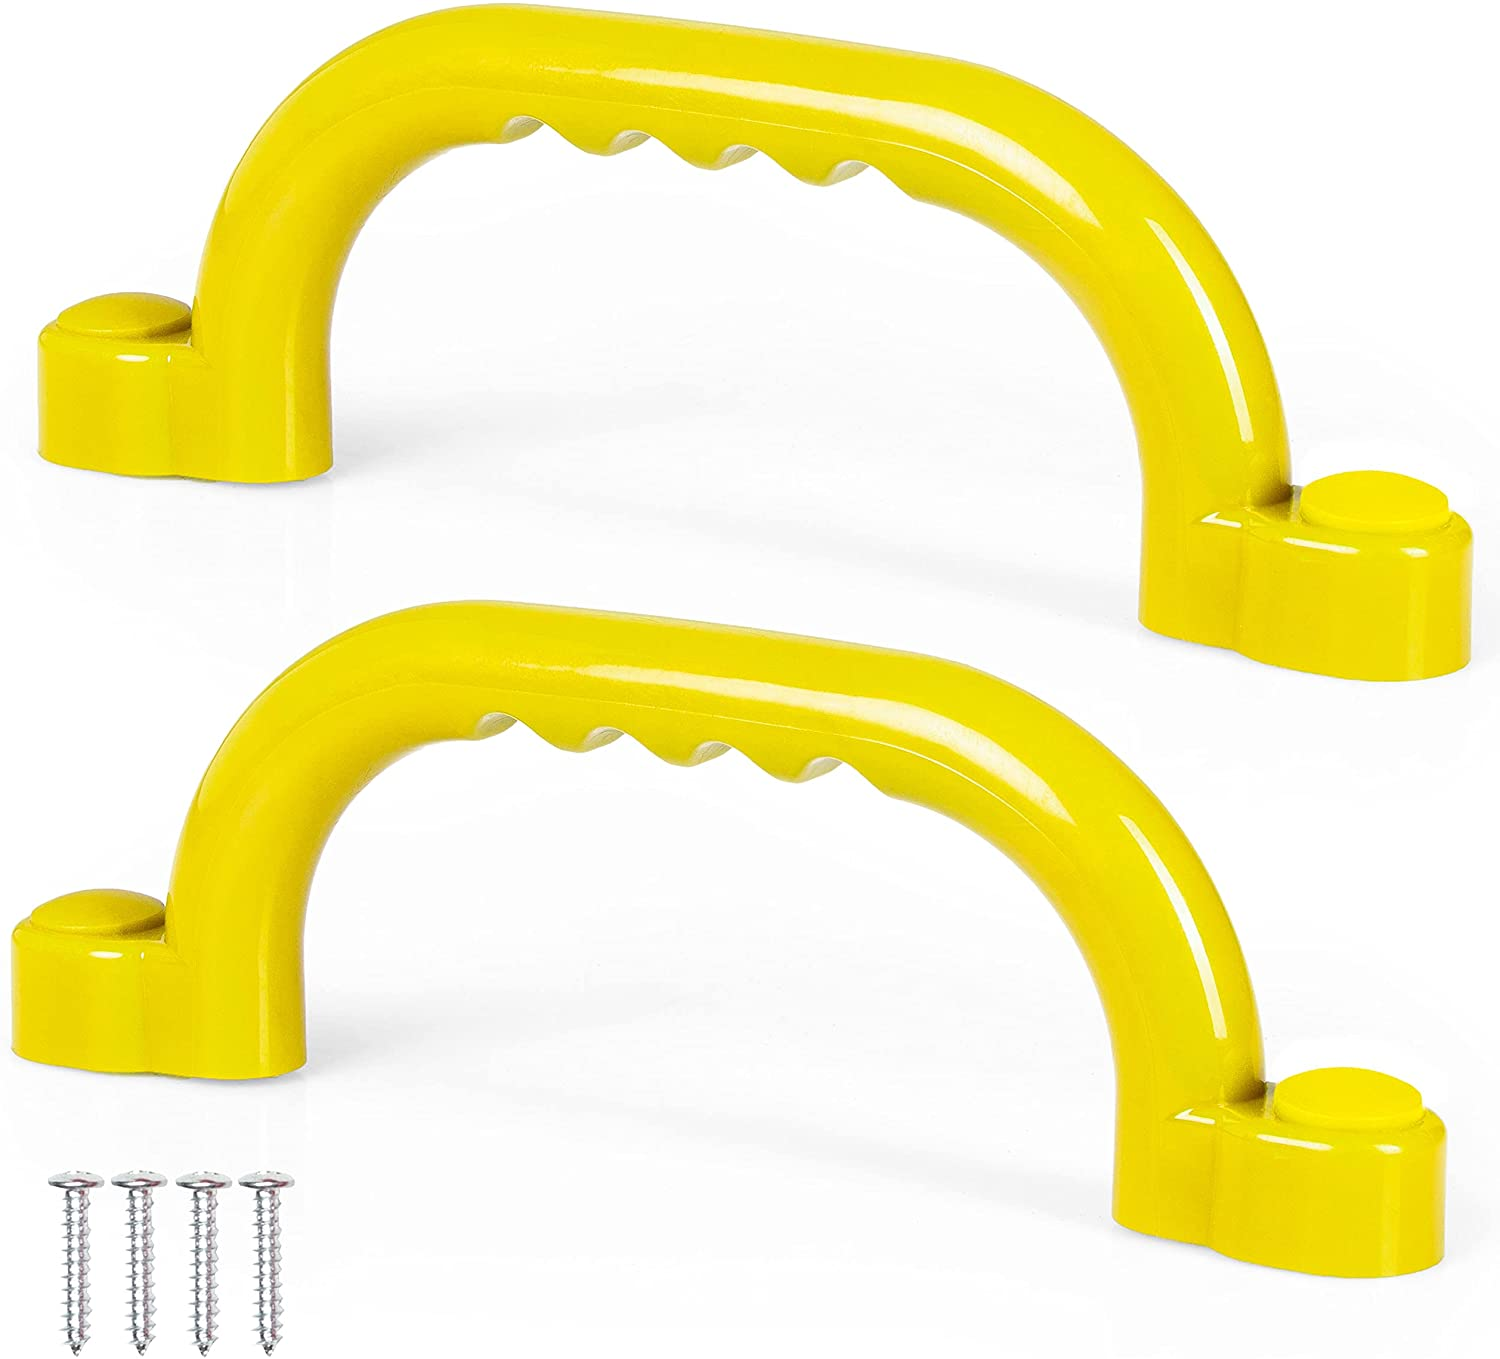 Playground Safety Handles, 2 Pack , Yellow Grab Handle Bars for Jungle Gym